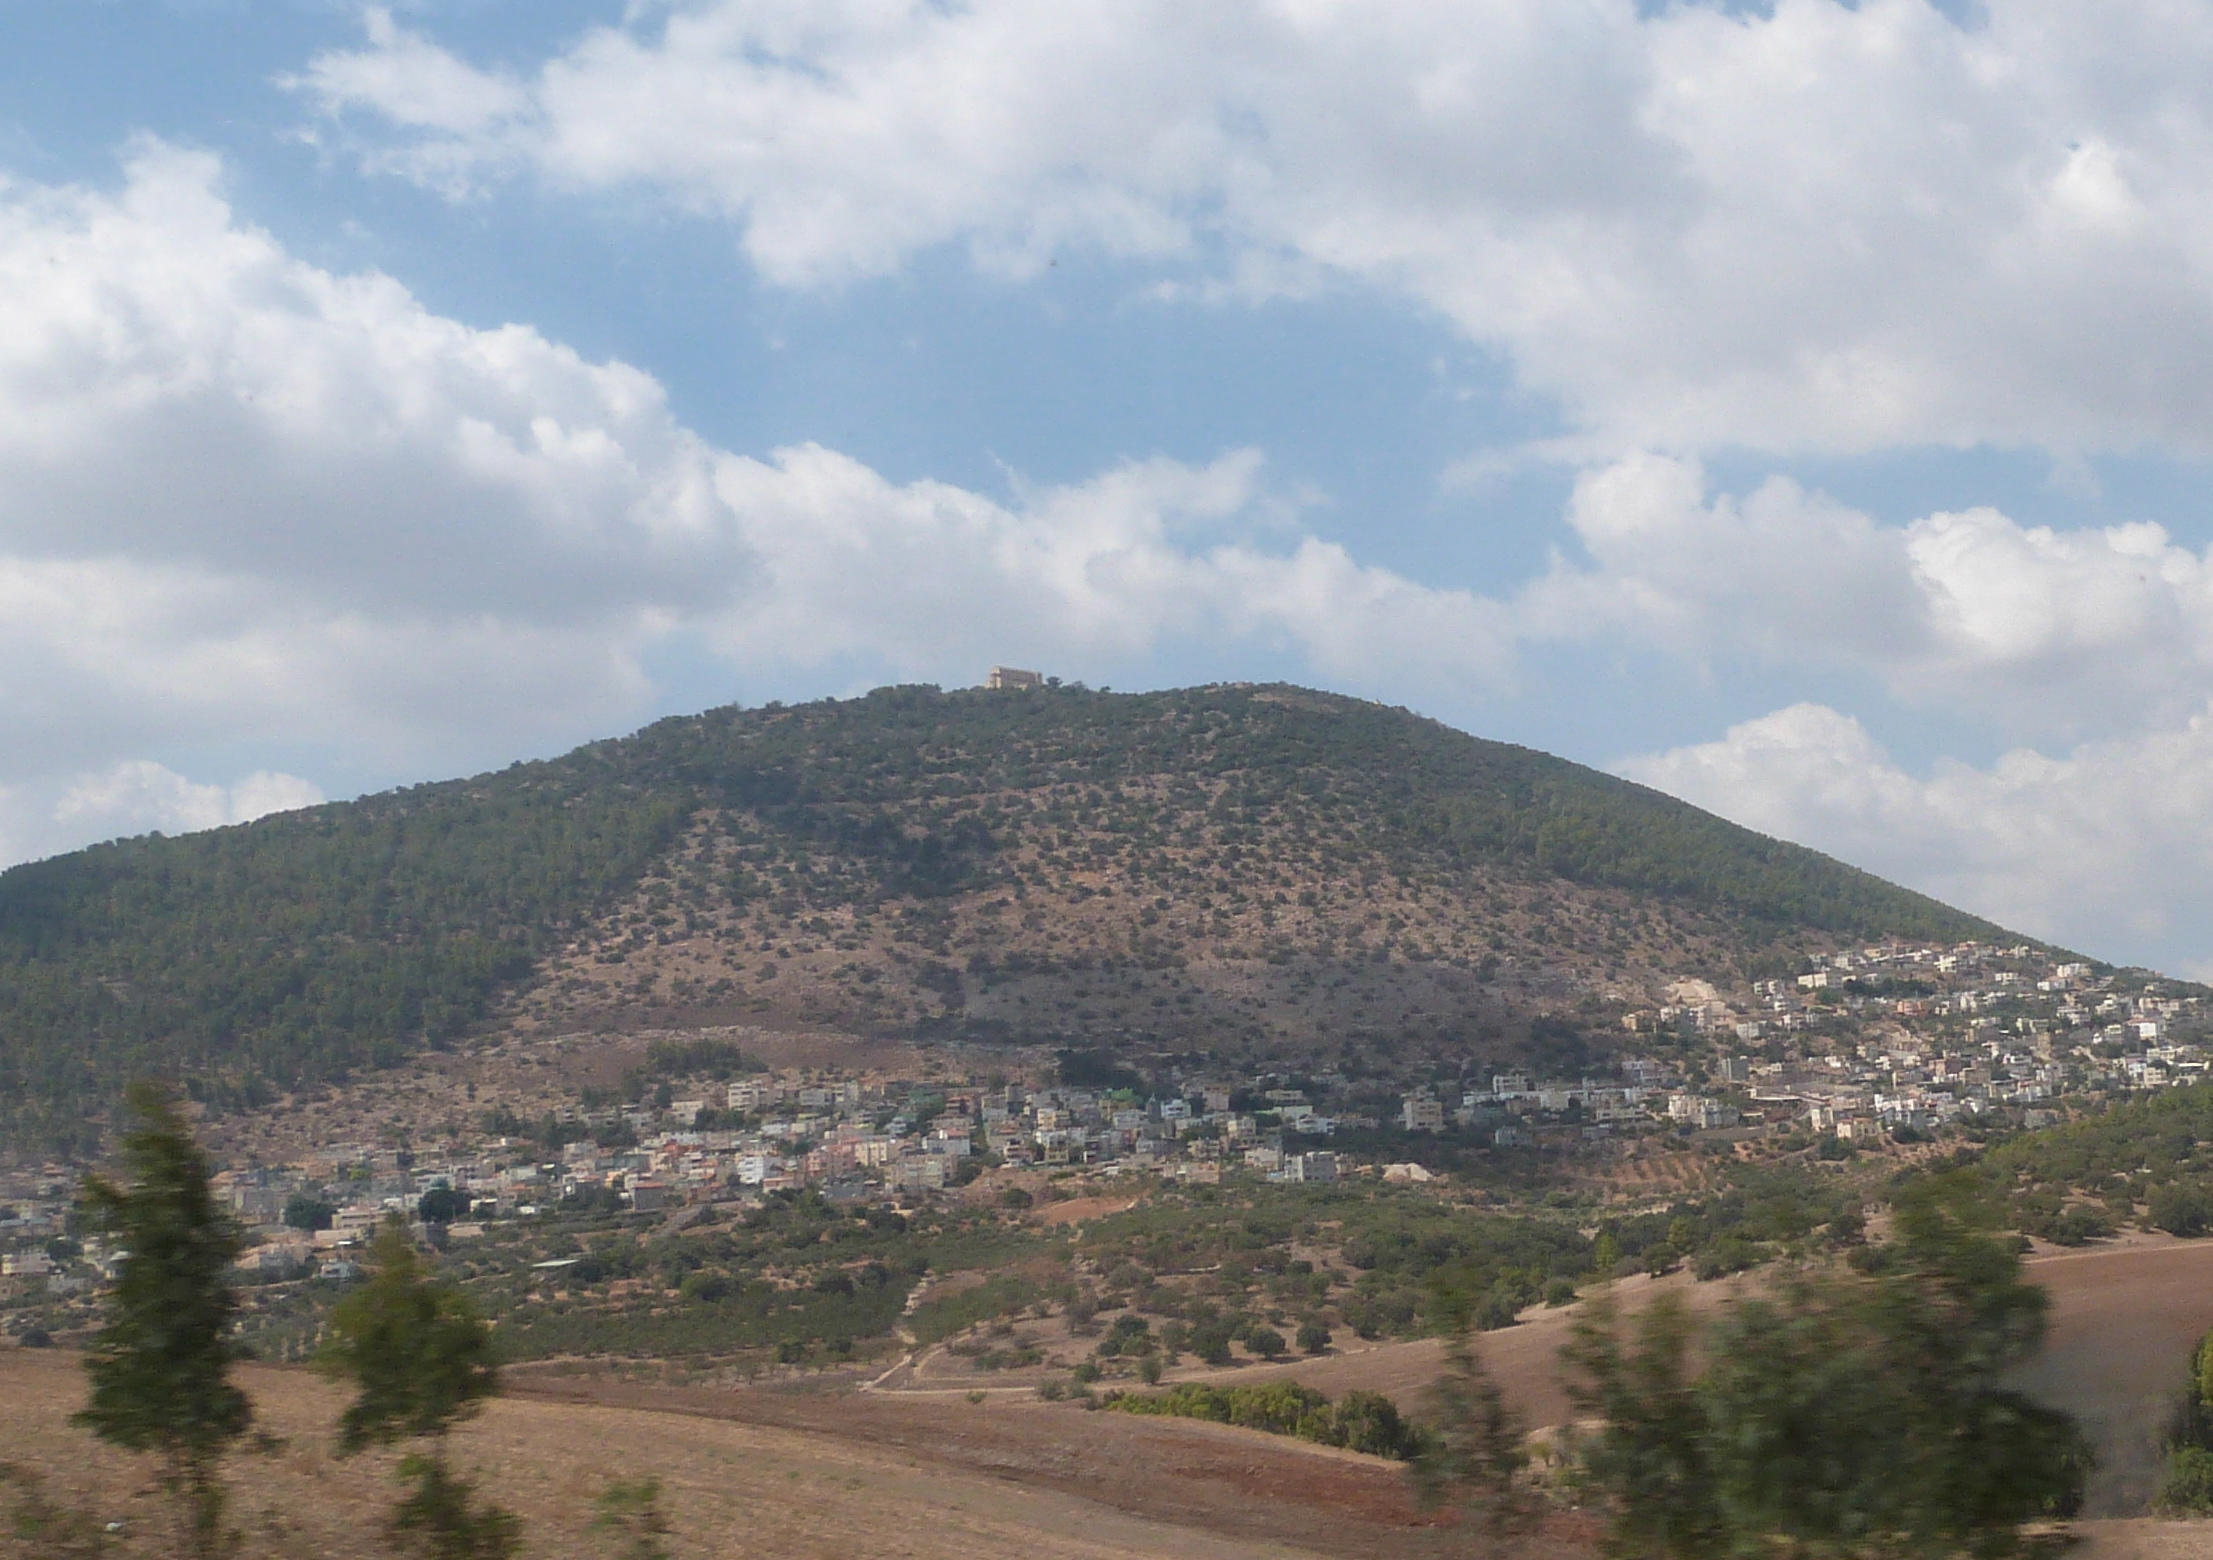 Holy Mount Tabor - Place of the Transfiguration 48